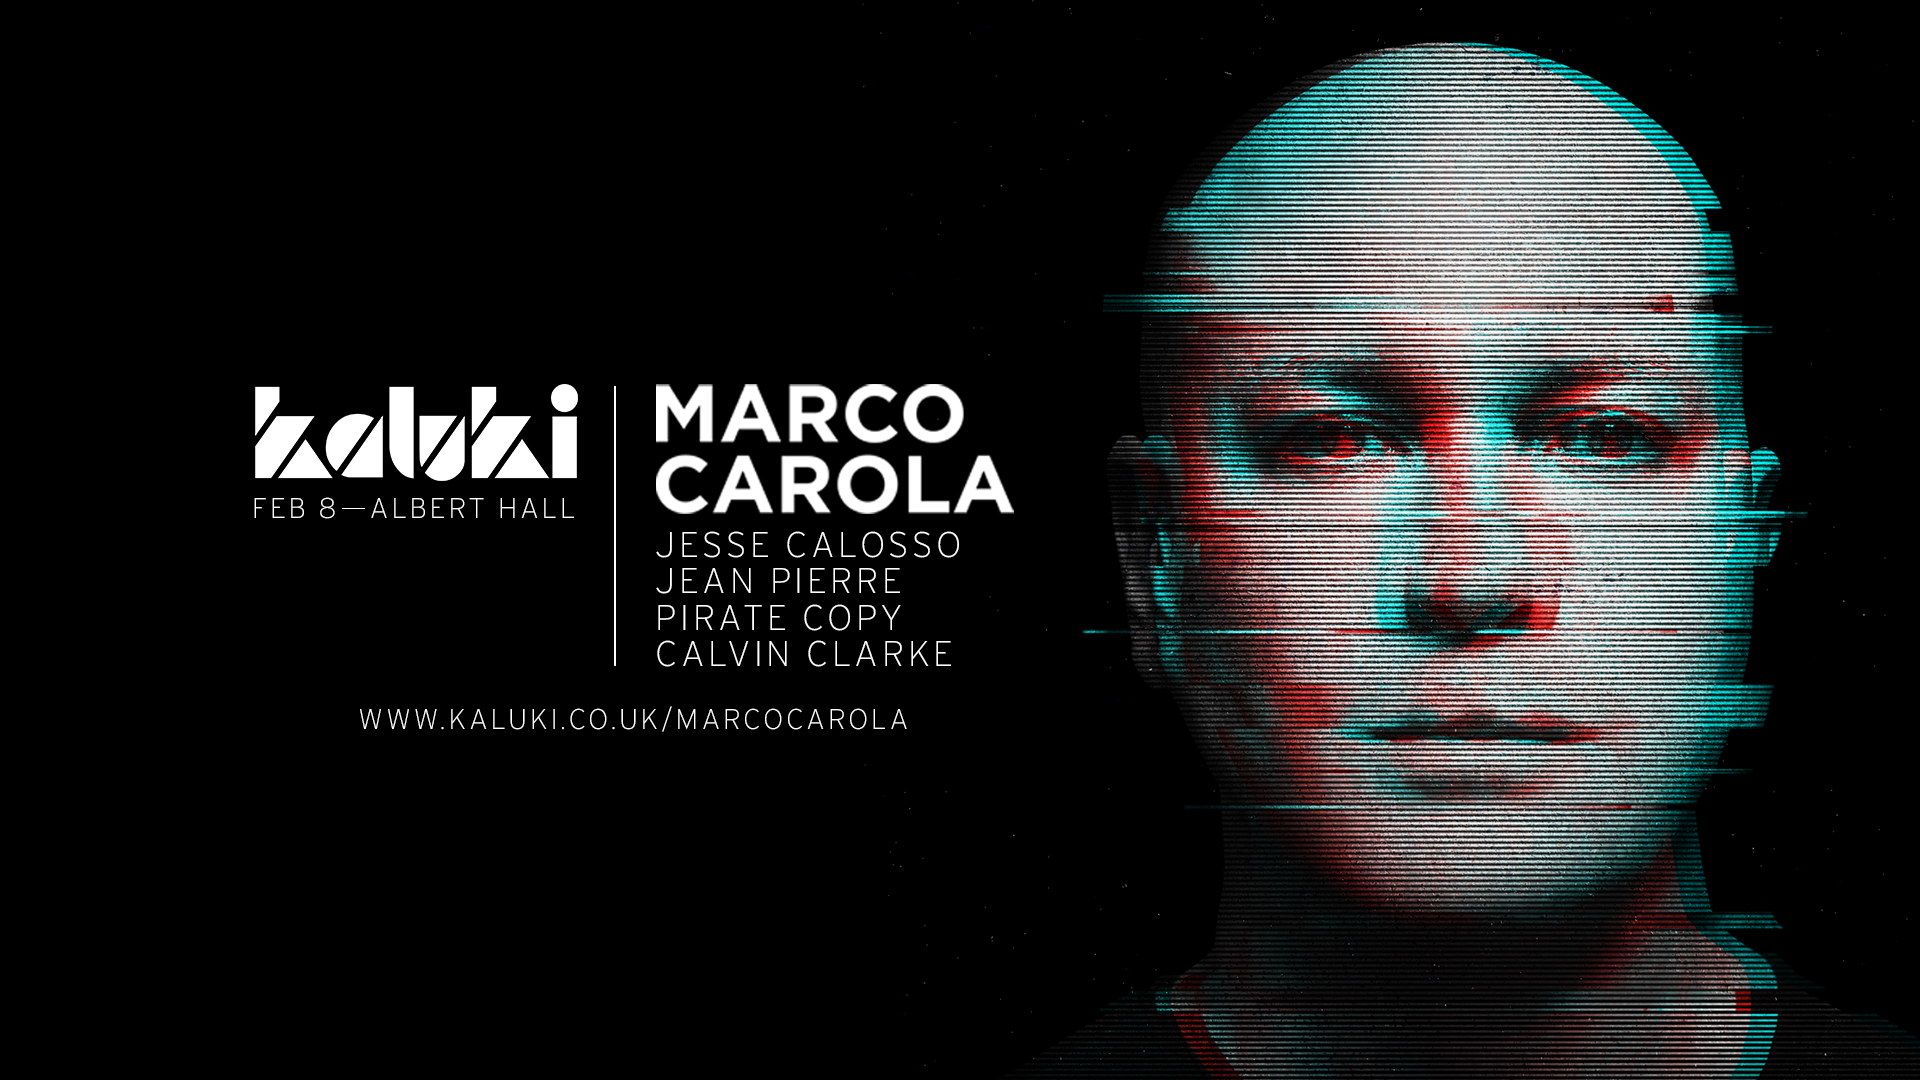 Marco Carola (Sold Out)